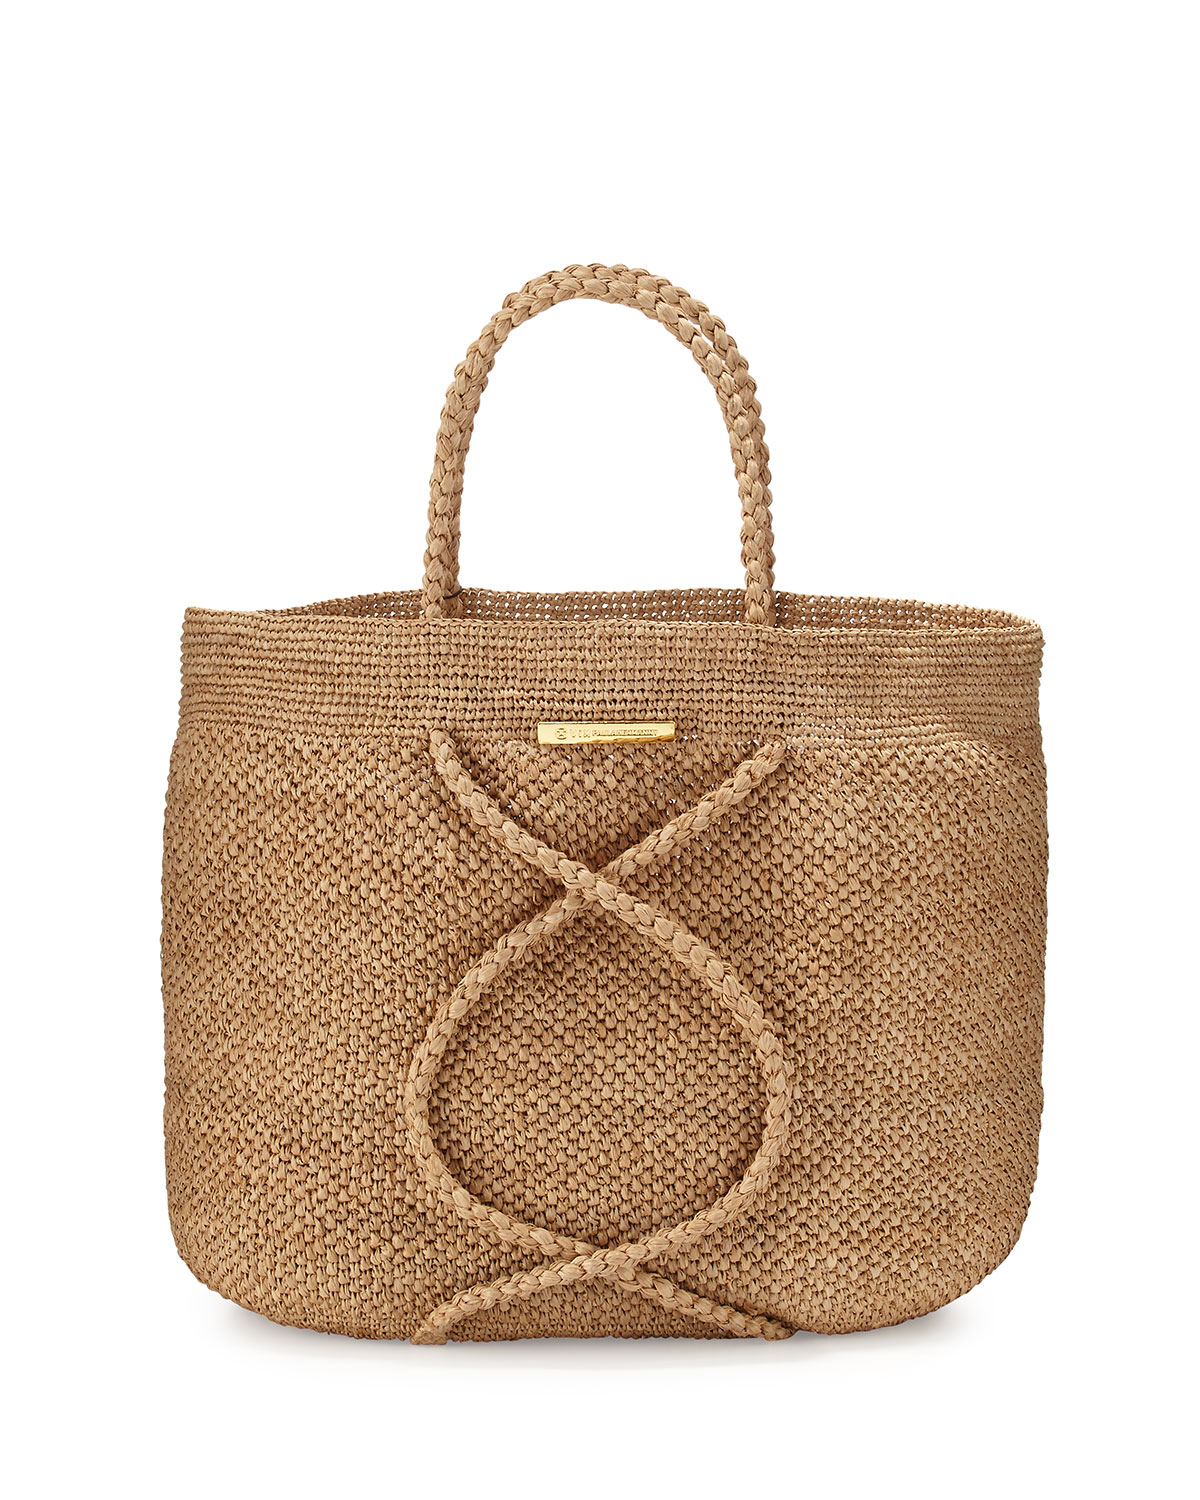 X Straw Beach Bag, Natural - Vix